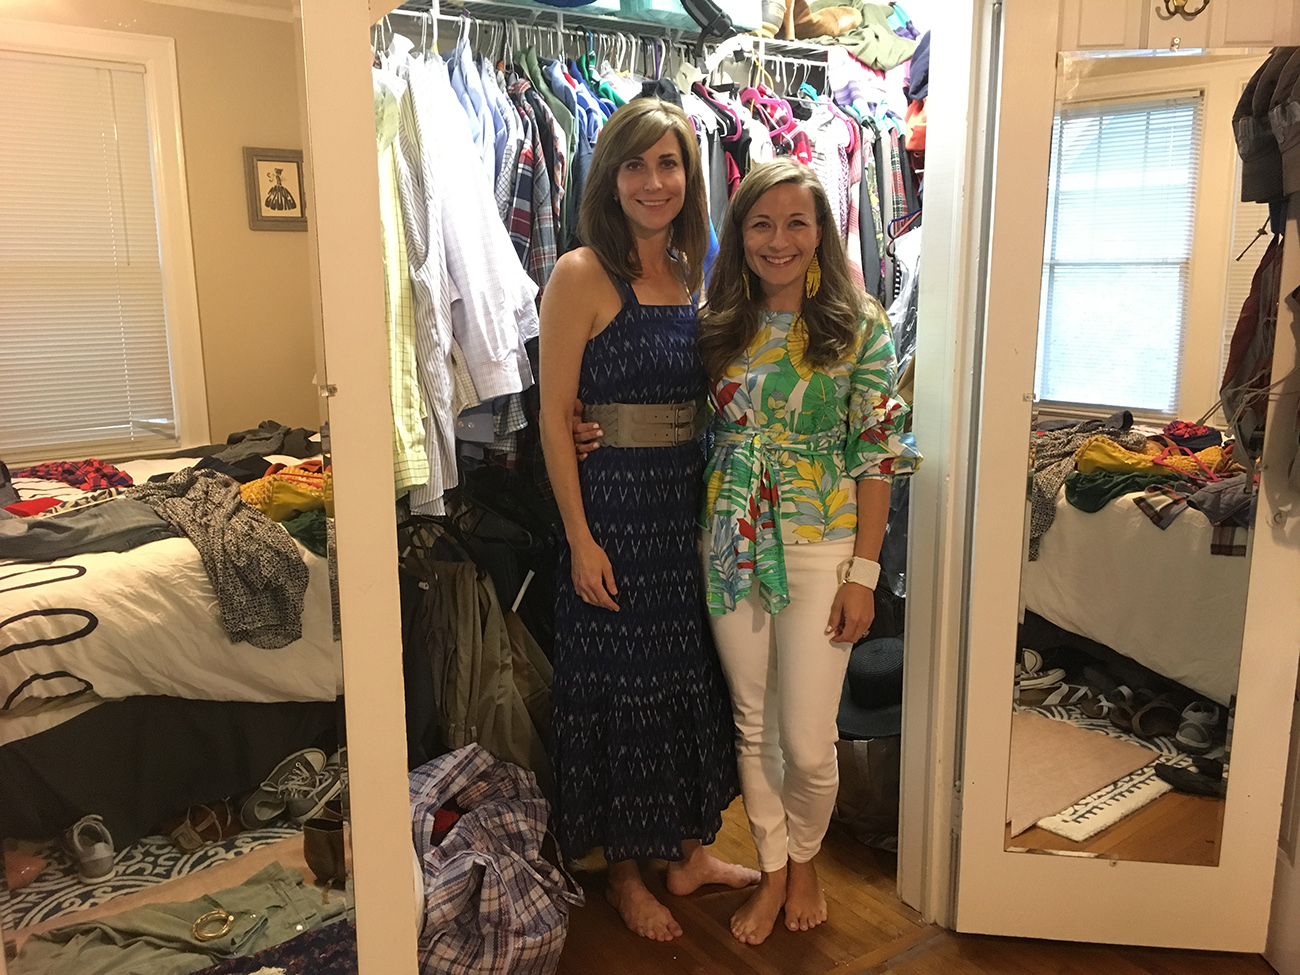 I used a 'Closet Editor' and now I'm hooked